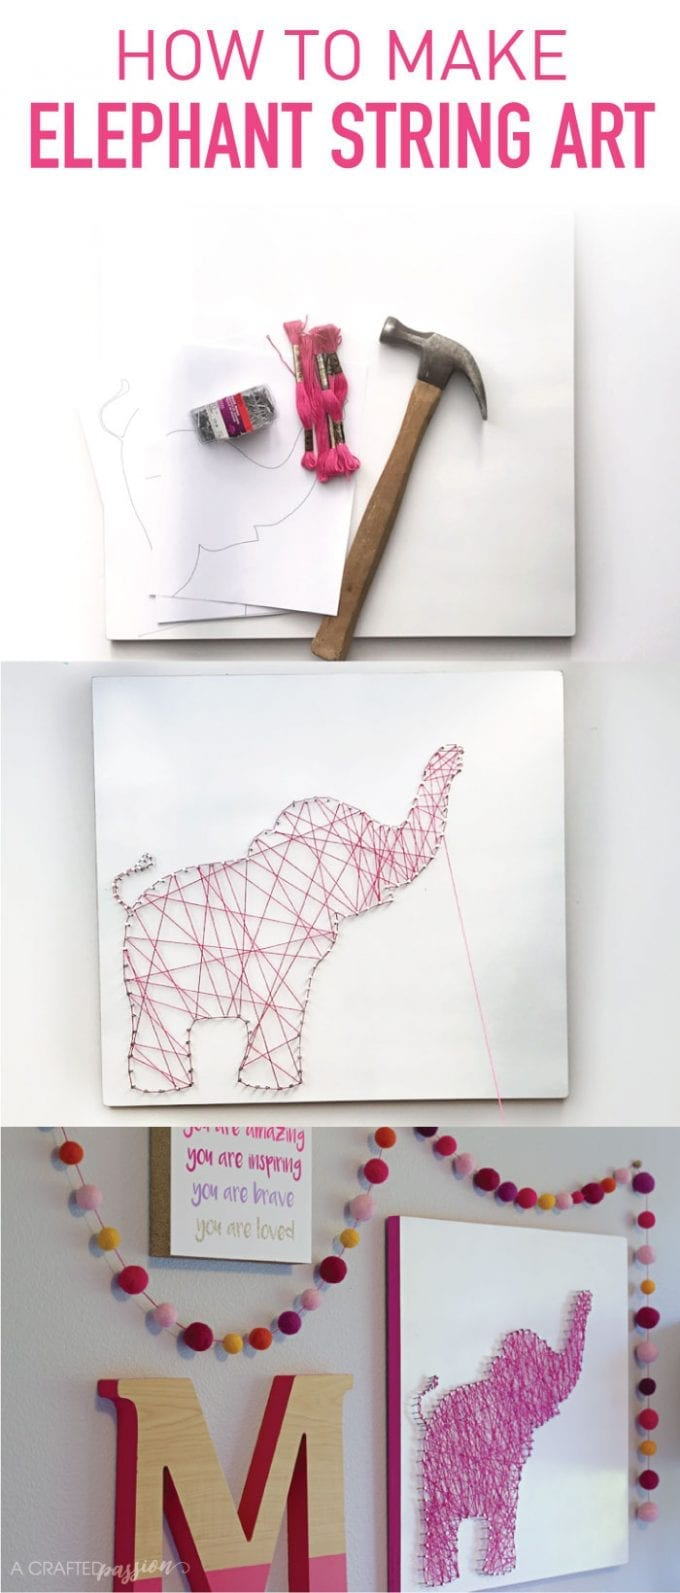 how to make an Elephant string art image.